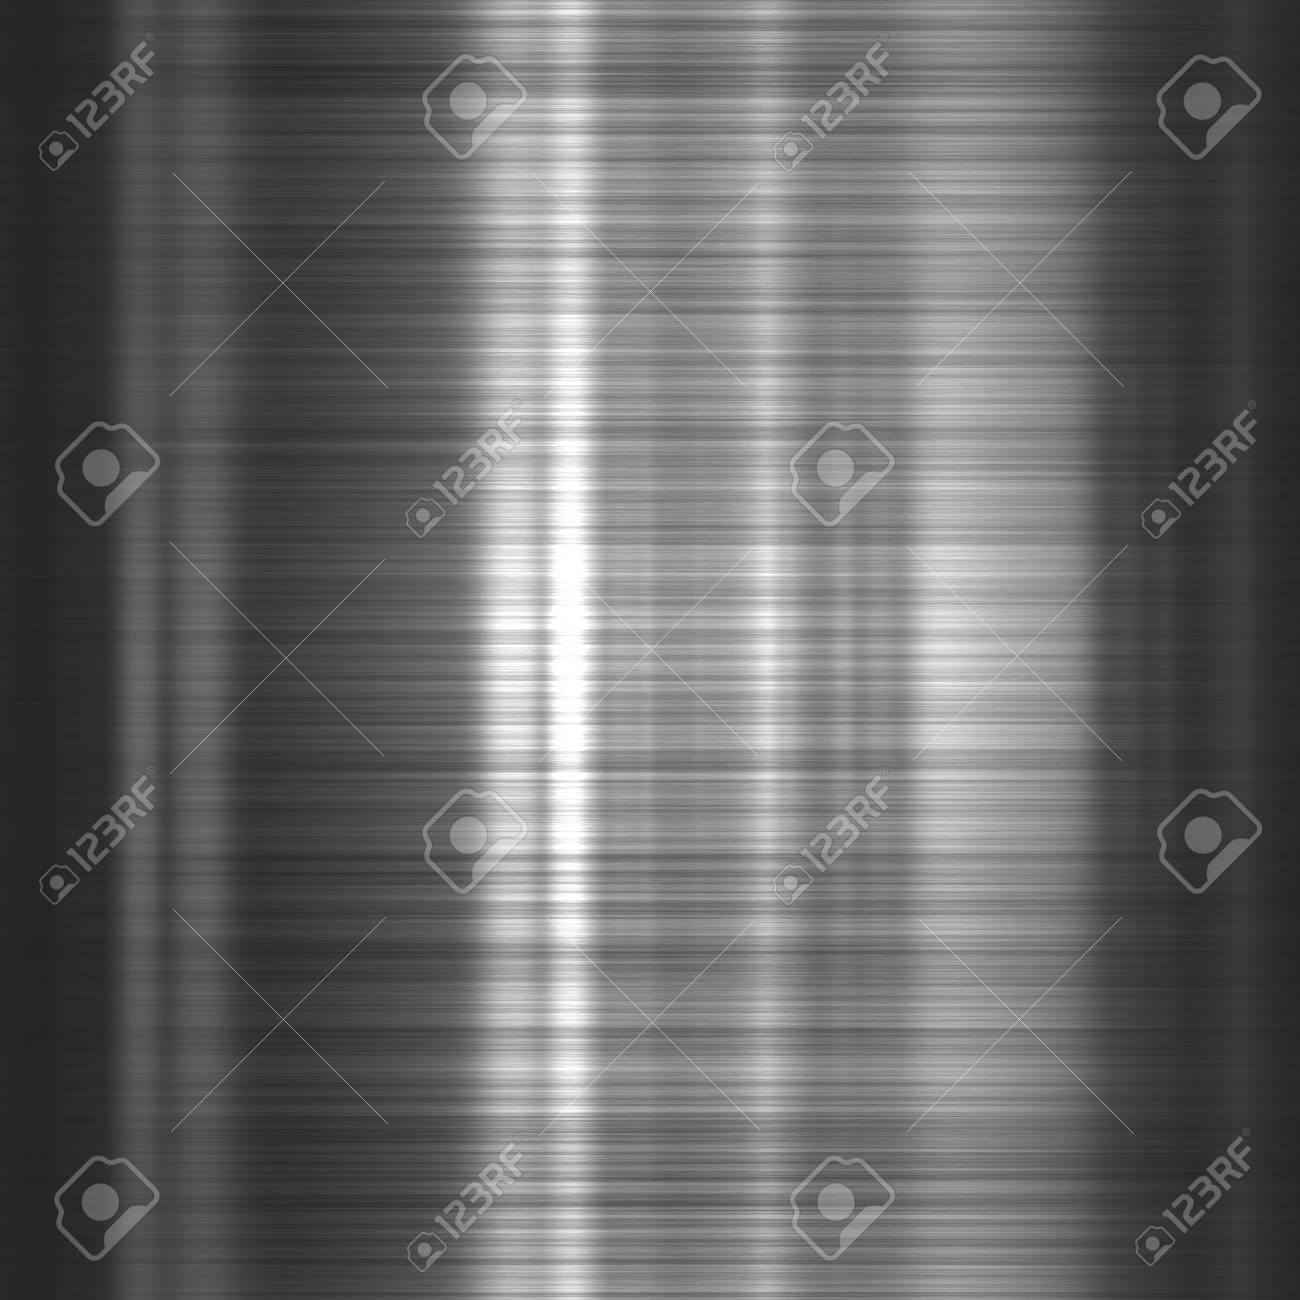 Metal background or texture of dark brushed metal plate Stock Photo - 23445531